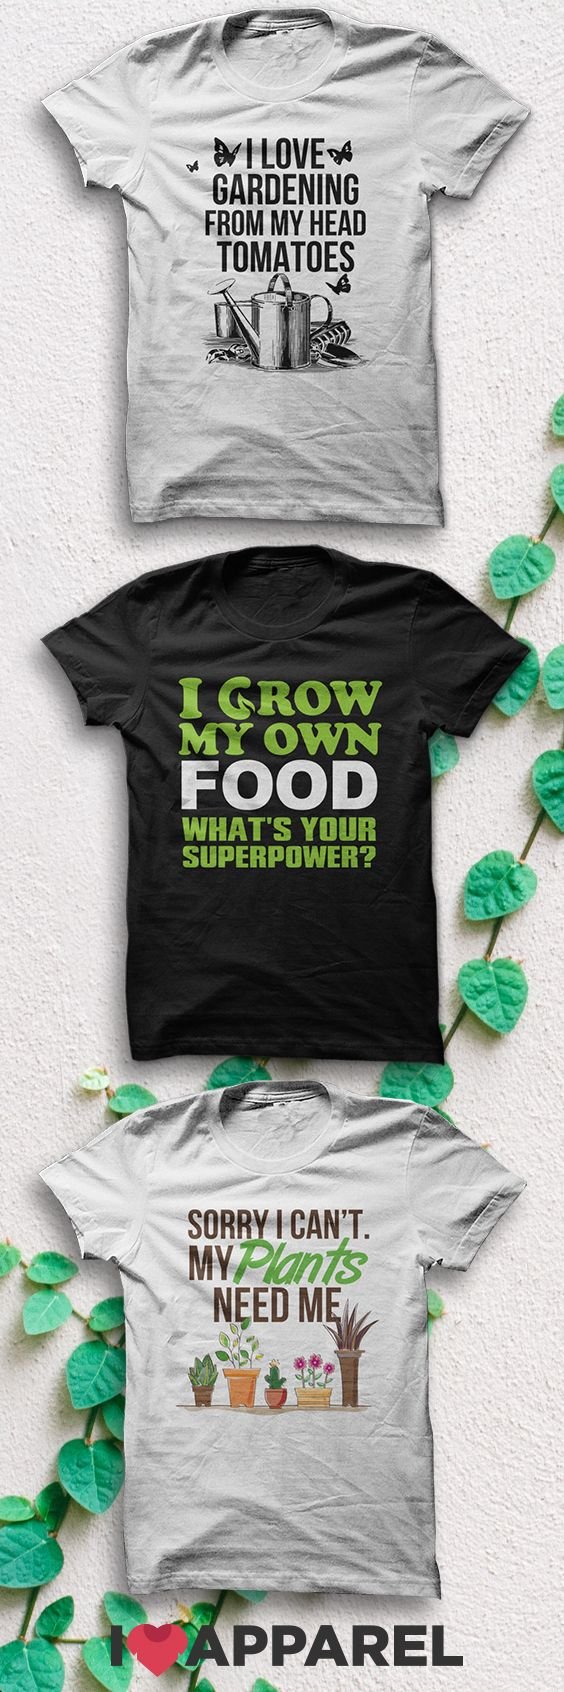 Buy Any 2 Items And Get FREE US Shipping. Check out our collection of gardening shirts.